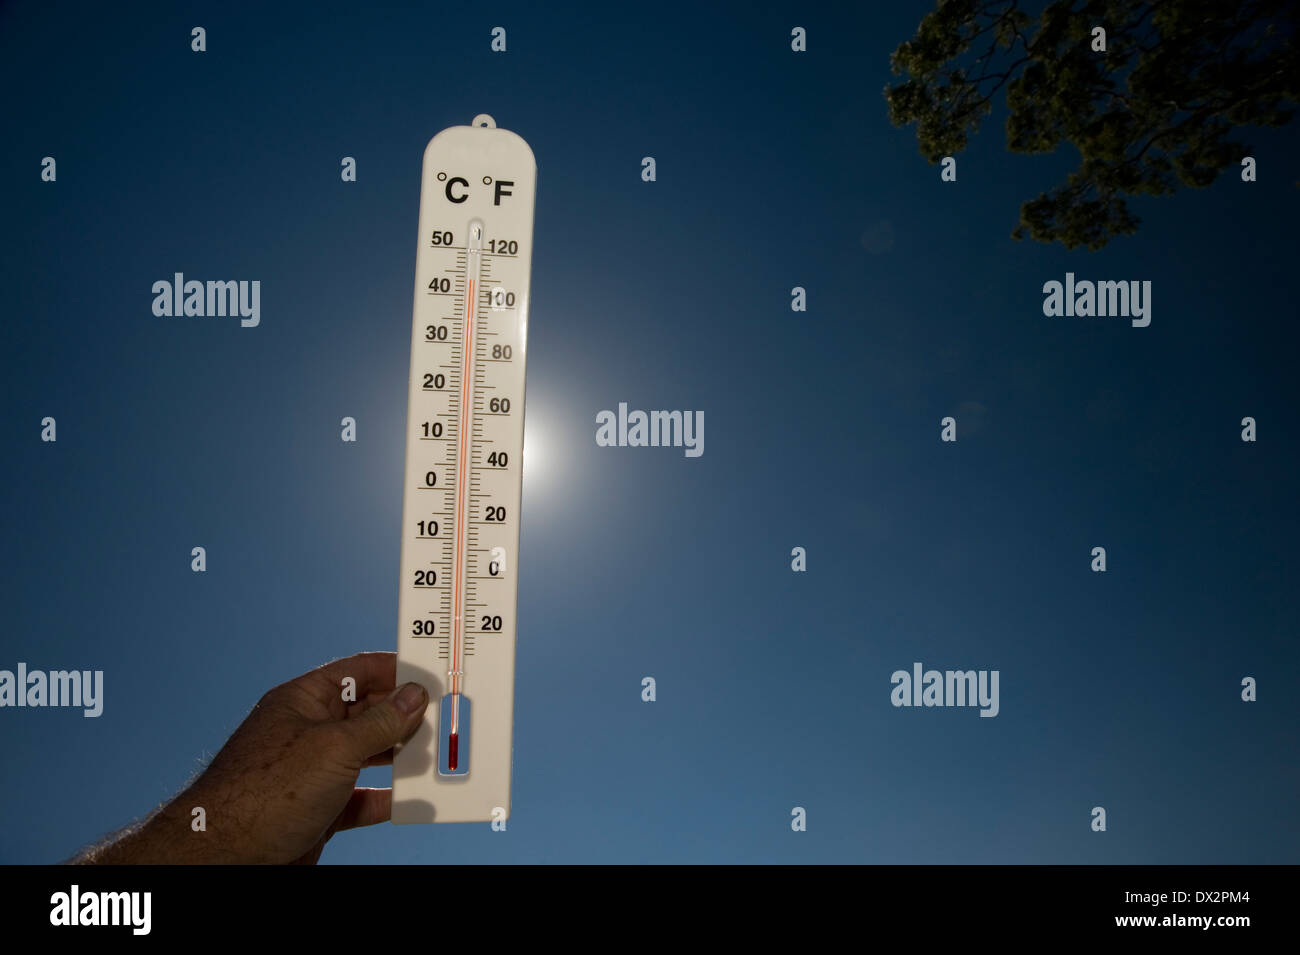 hot day heat sun scorching thermometer 40 degrees - Stock Image